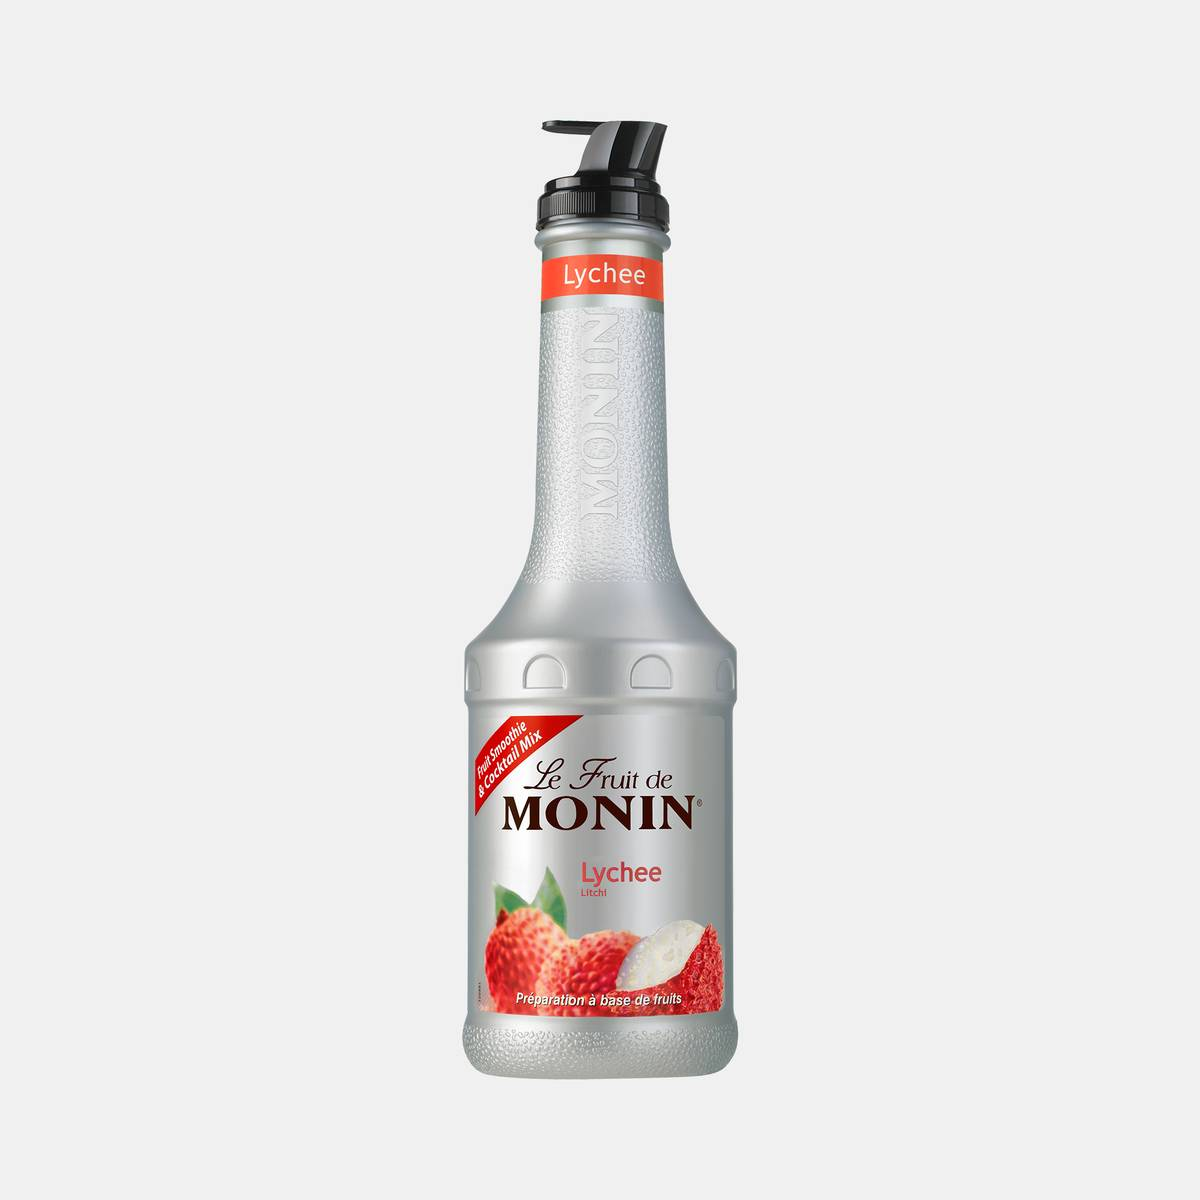 Monin Lychee Puree Fruit Mix 1 Liter Bottle